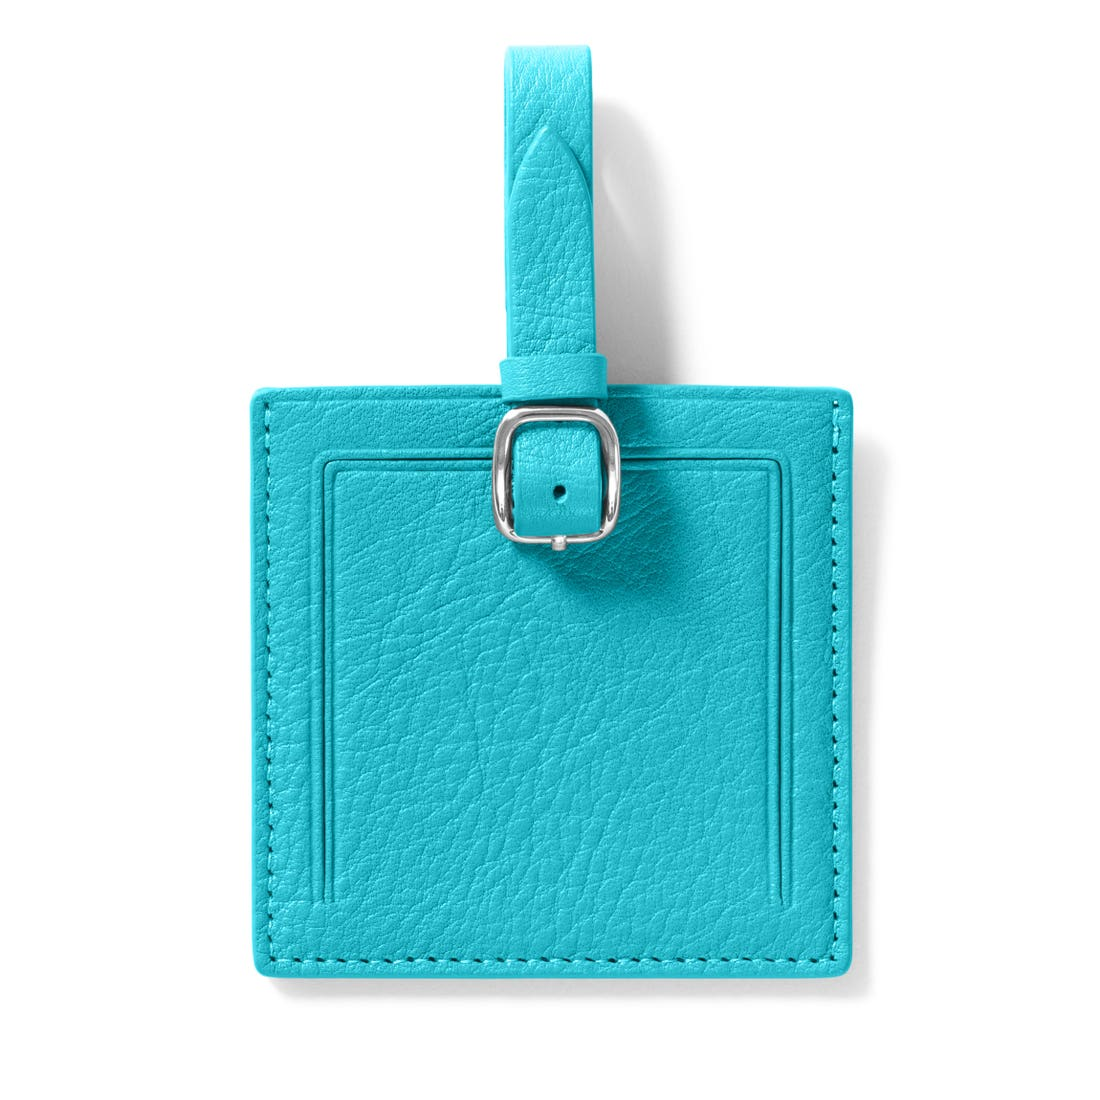 Small Square Luggage Tag